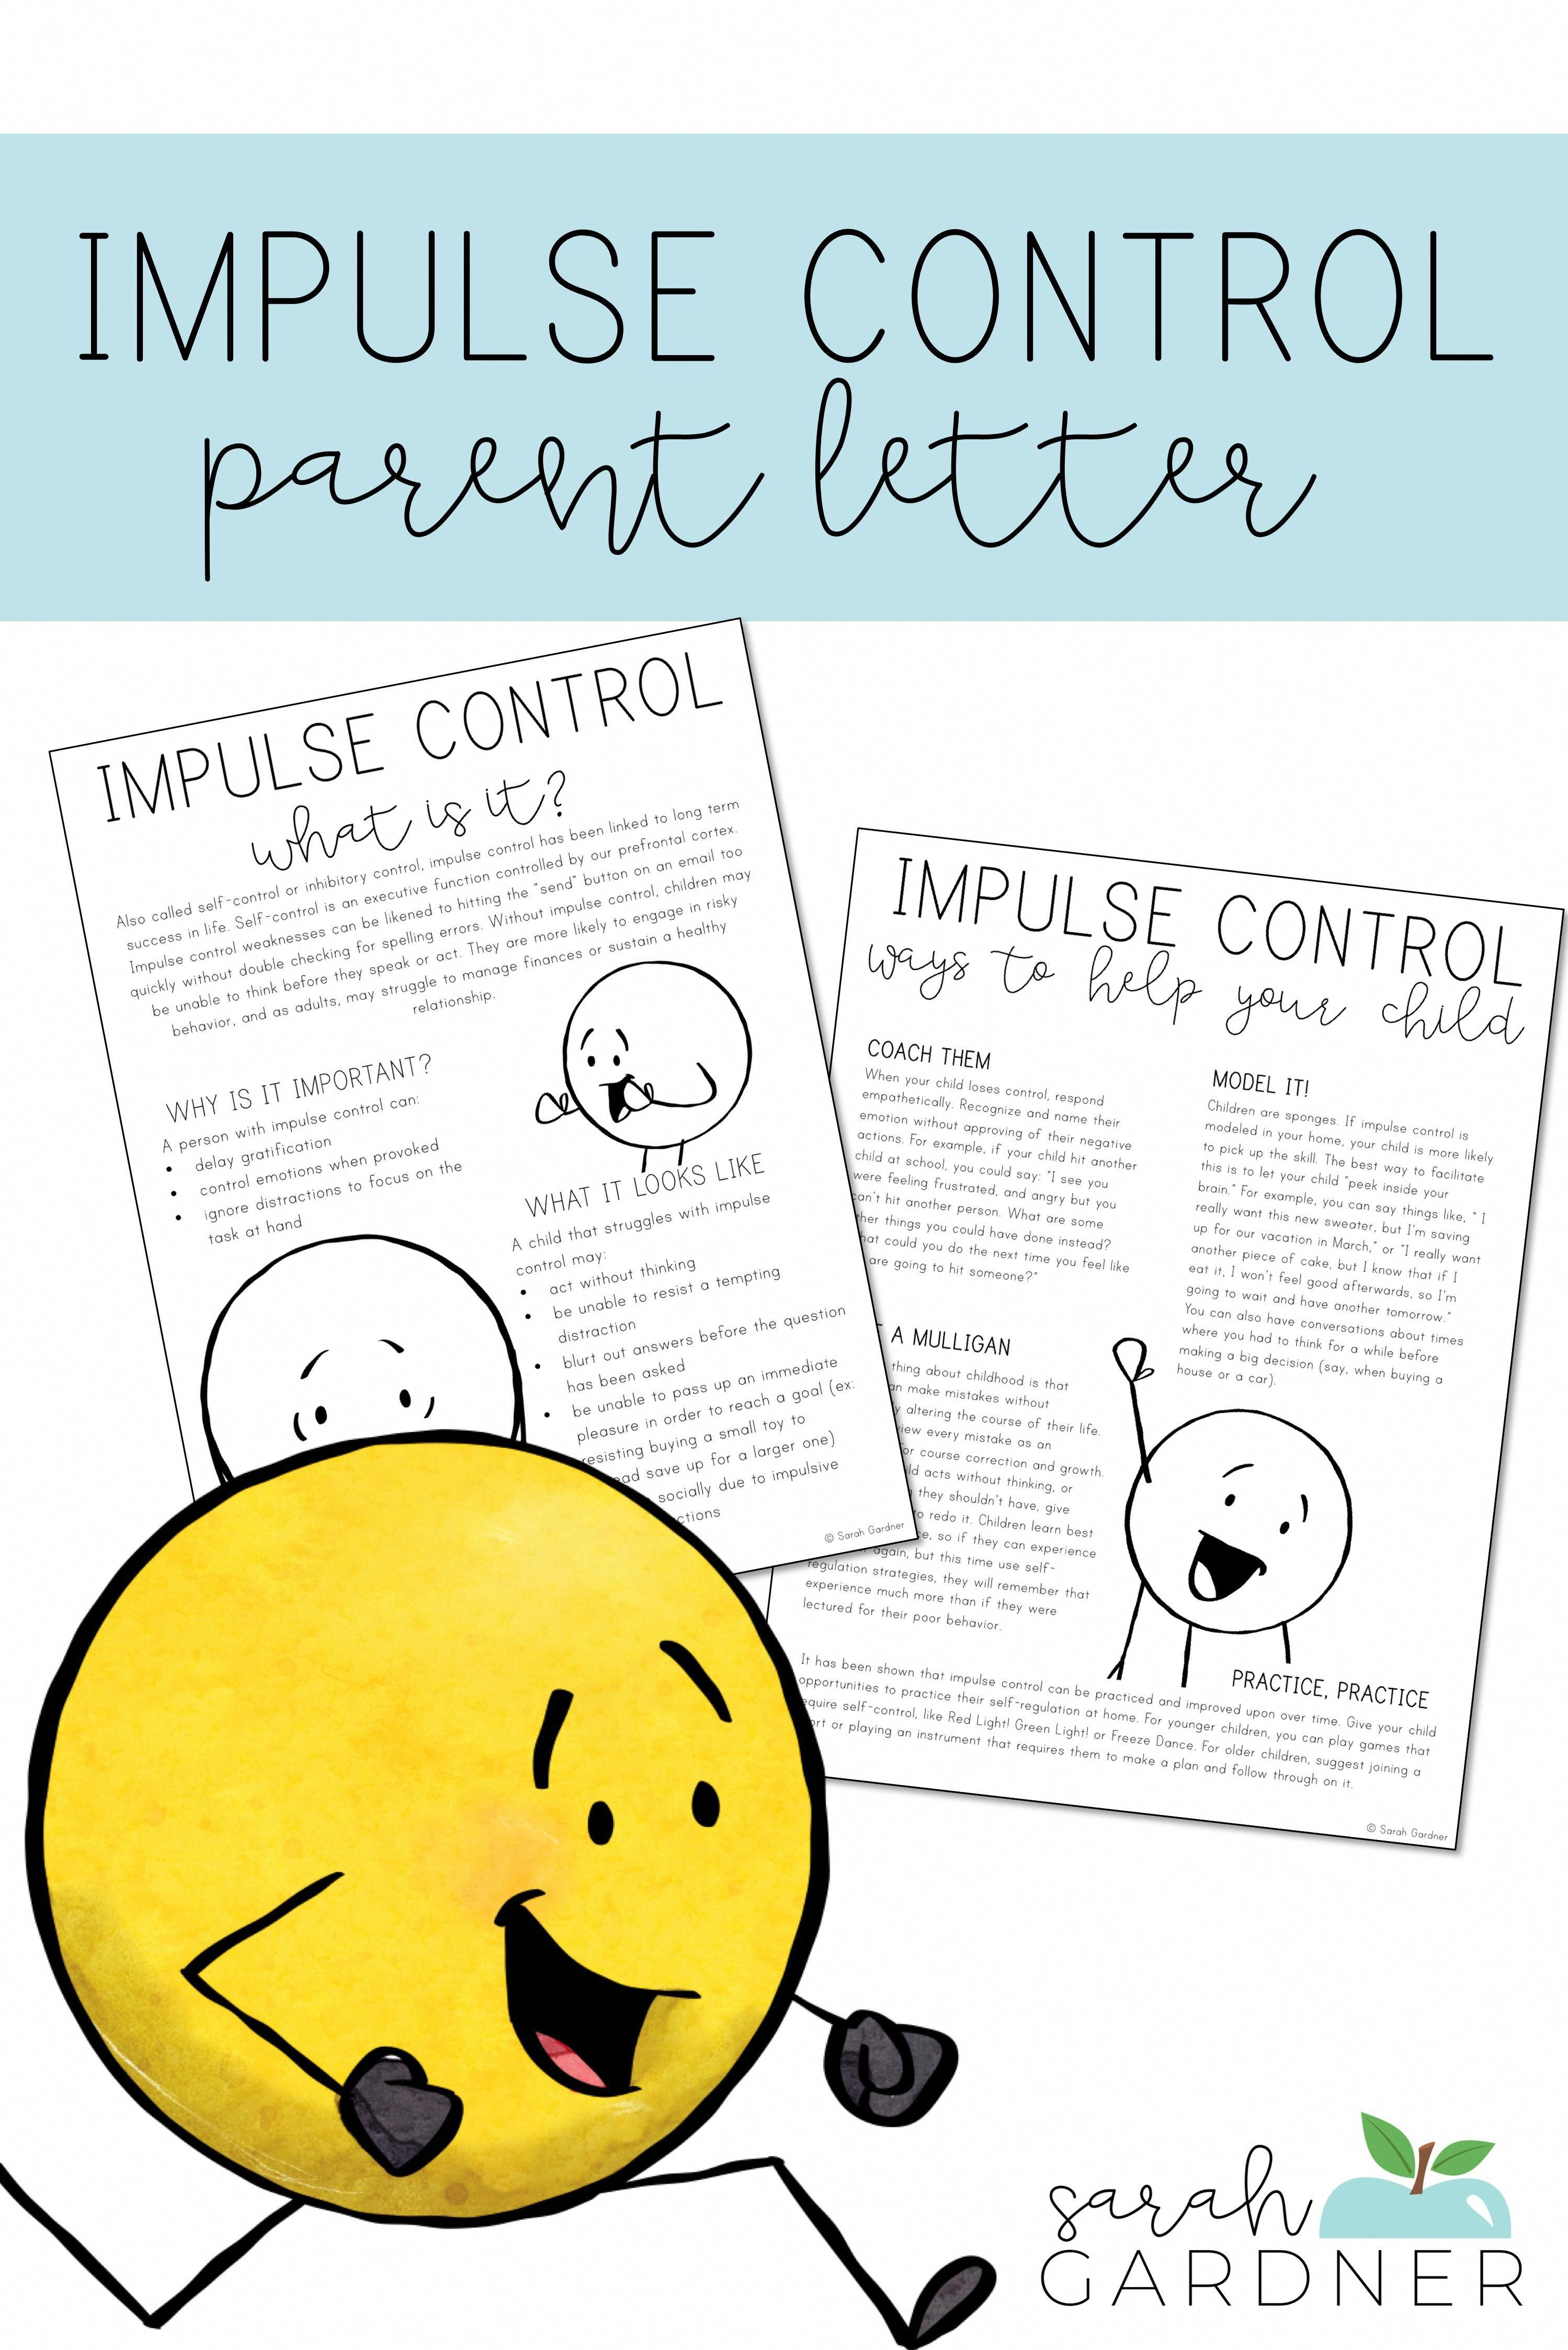 Impulse Control Parent Letter